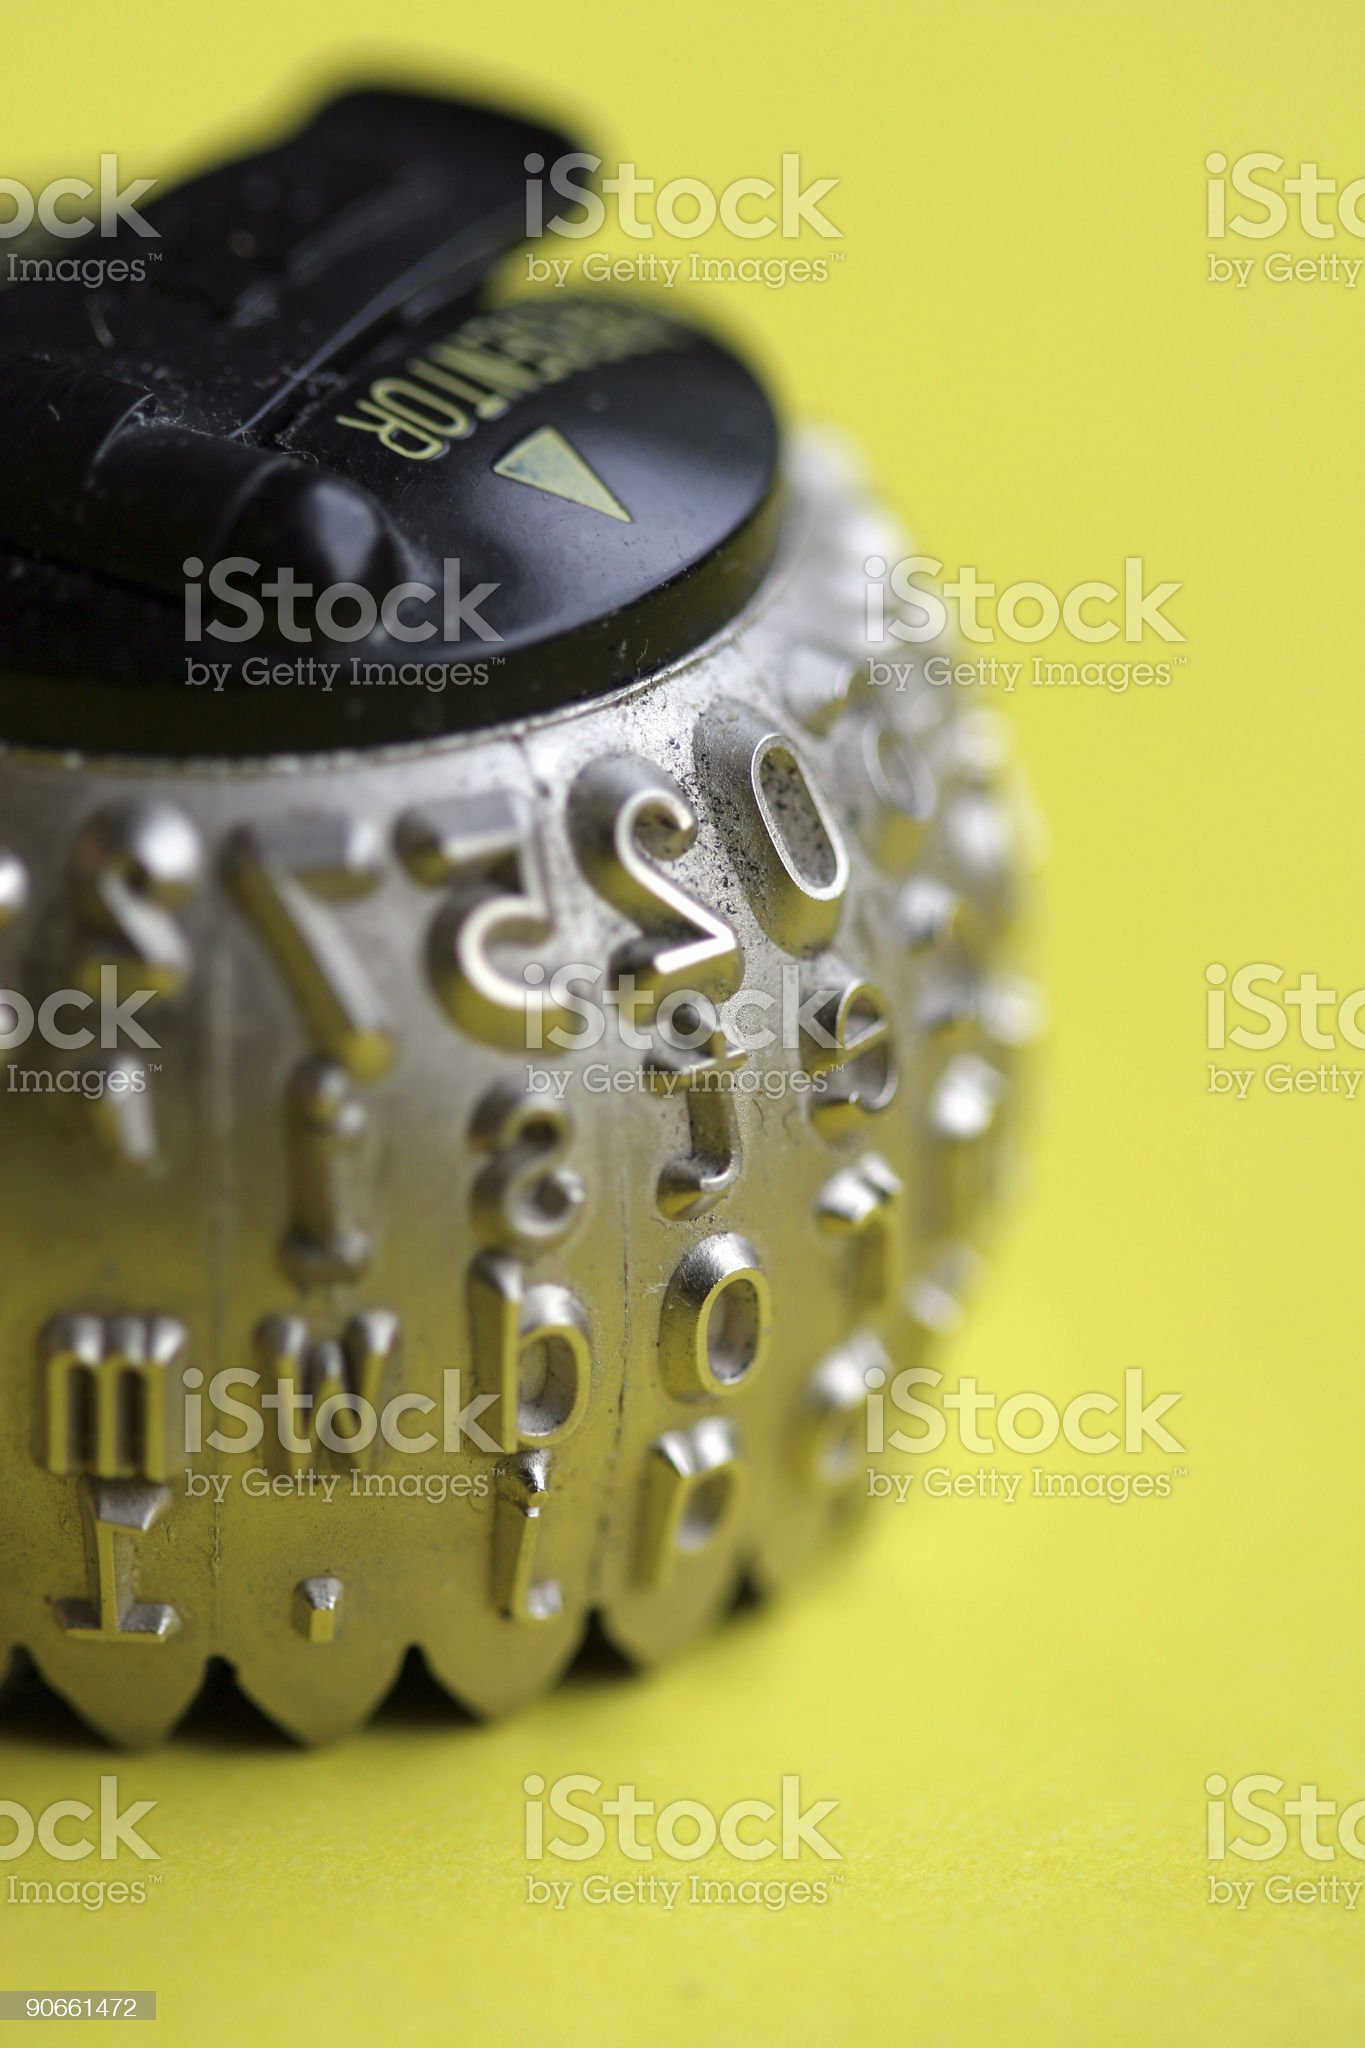 Hot Type one royalty-free stock photo